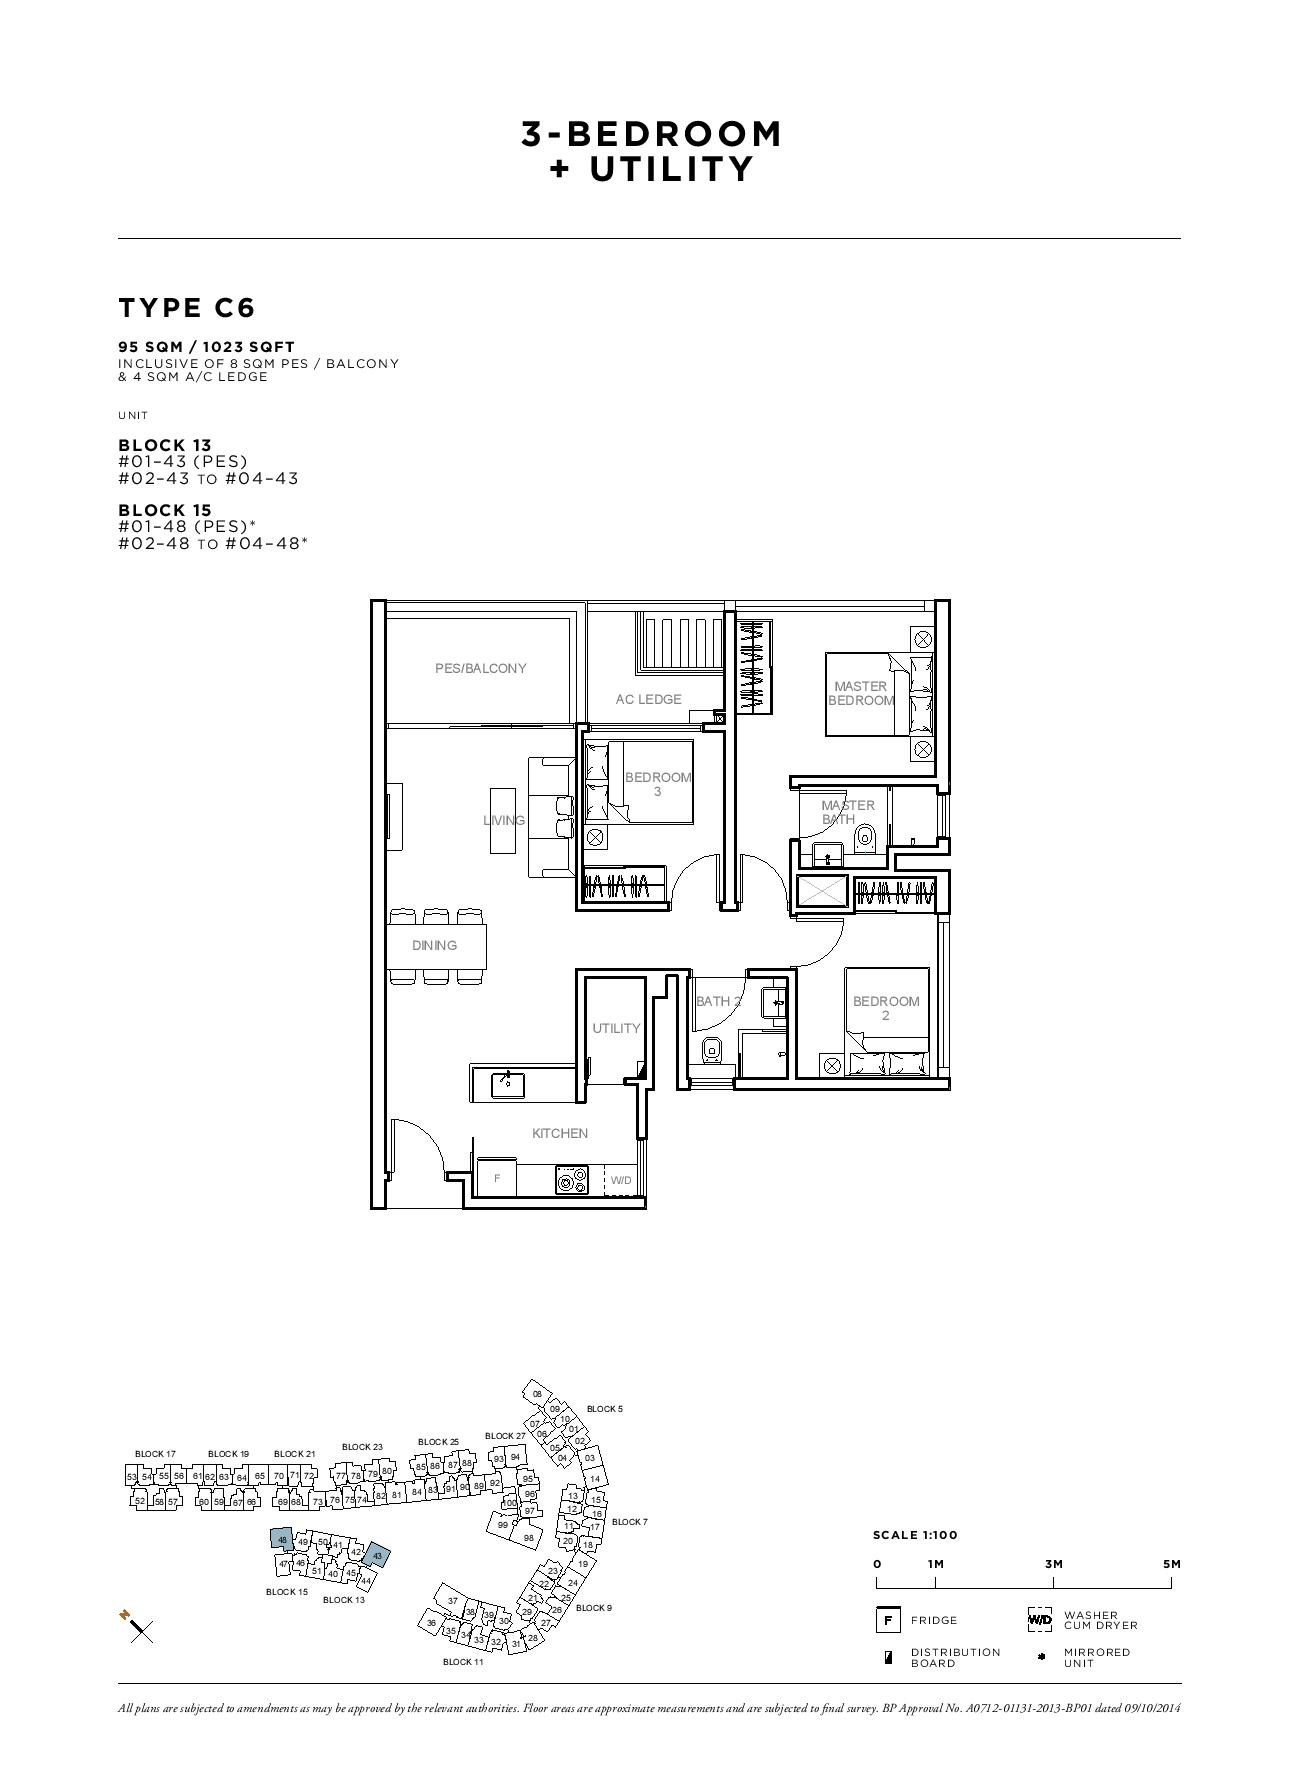 Sophia Hills 3 Bedroom + Utility Type C6 Floor Plans